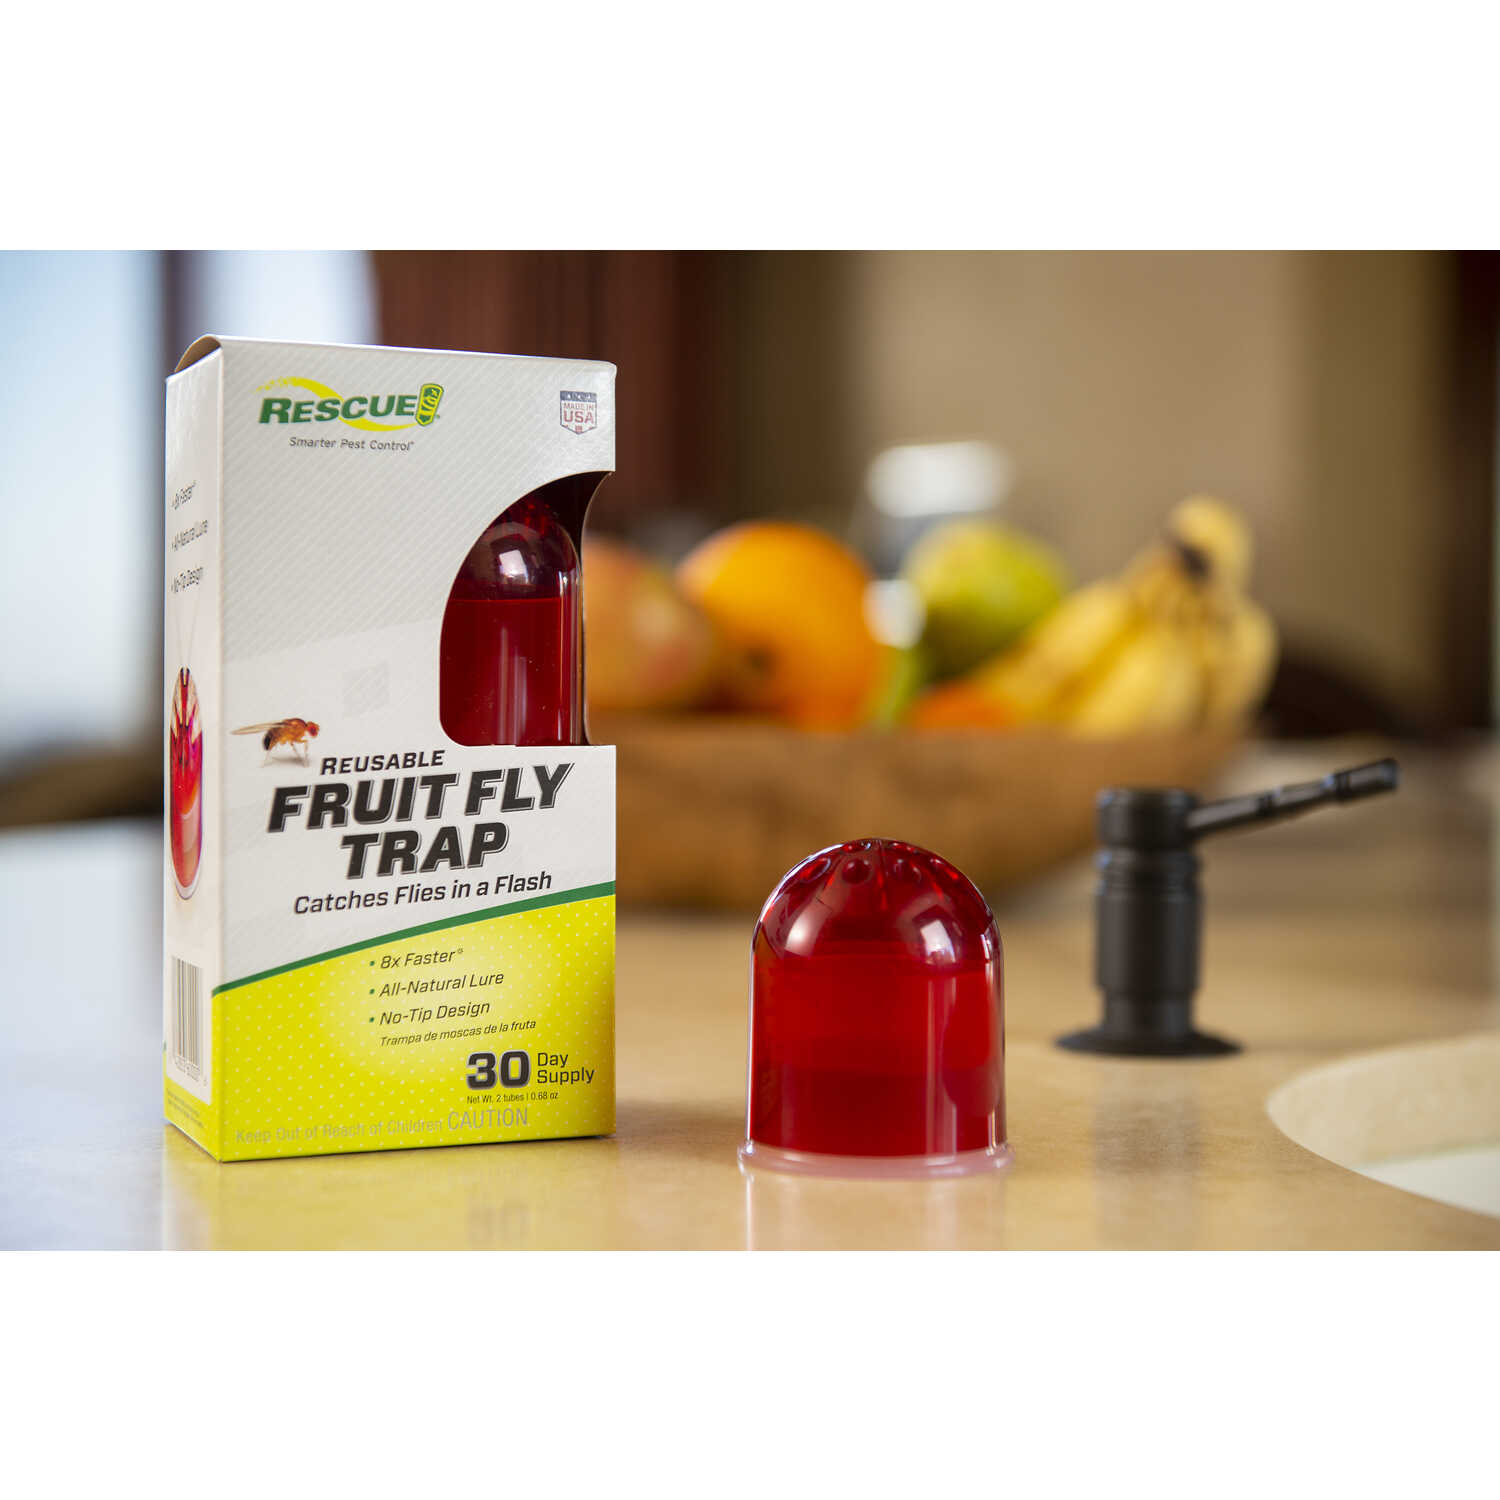 Rescue Fruit Fly Trap - Ace Hardware